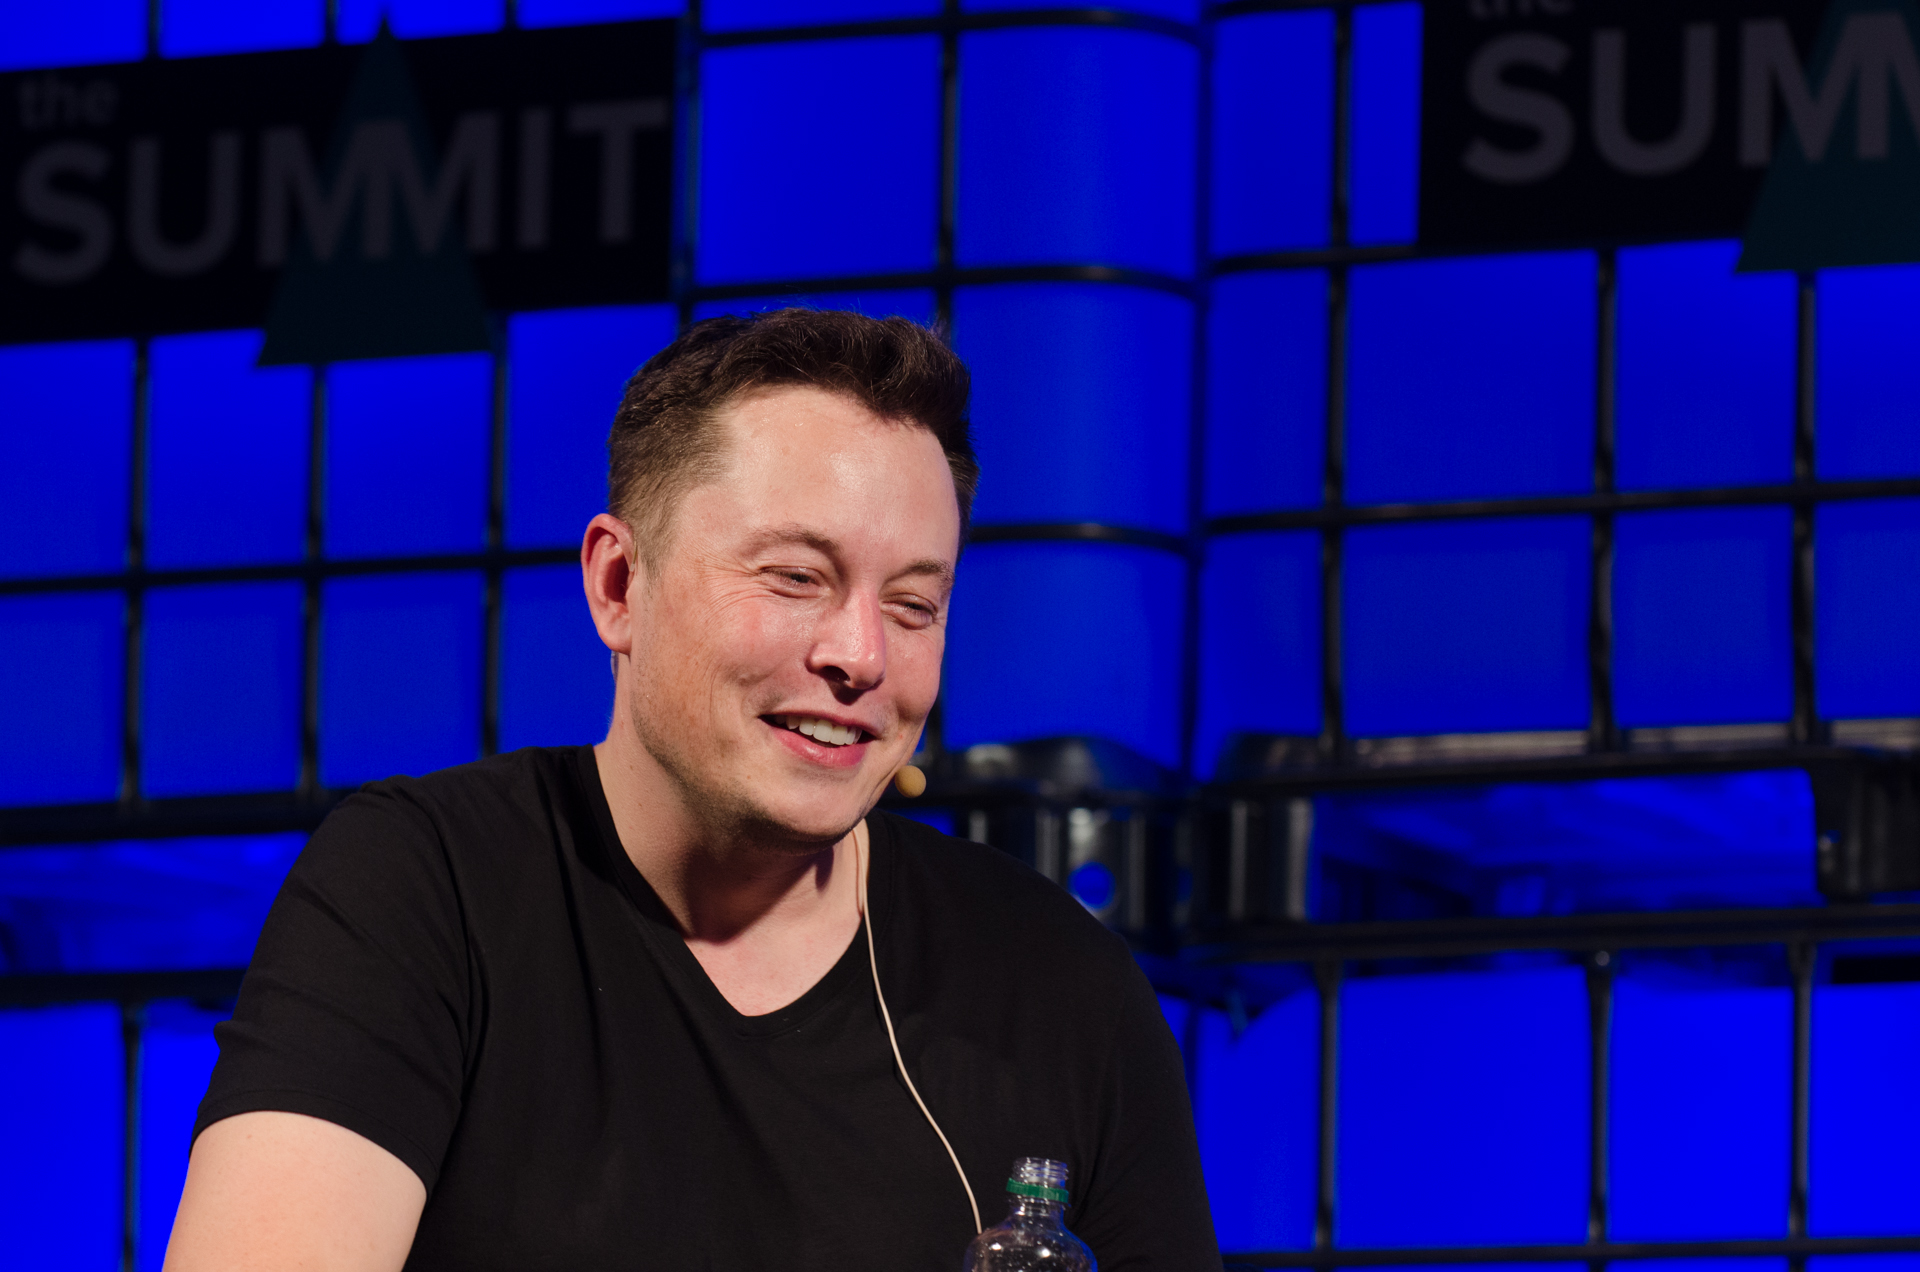 """Elon Musk: """"I Want Ethereum (ETH) Even If It Is A Scam"""" 13"""